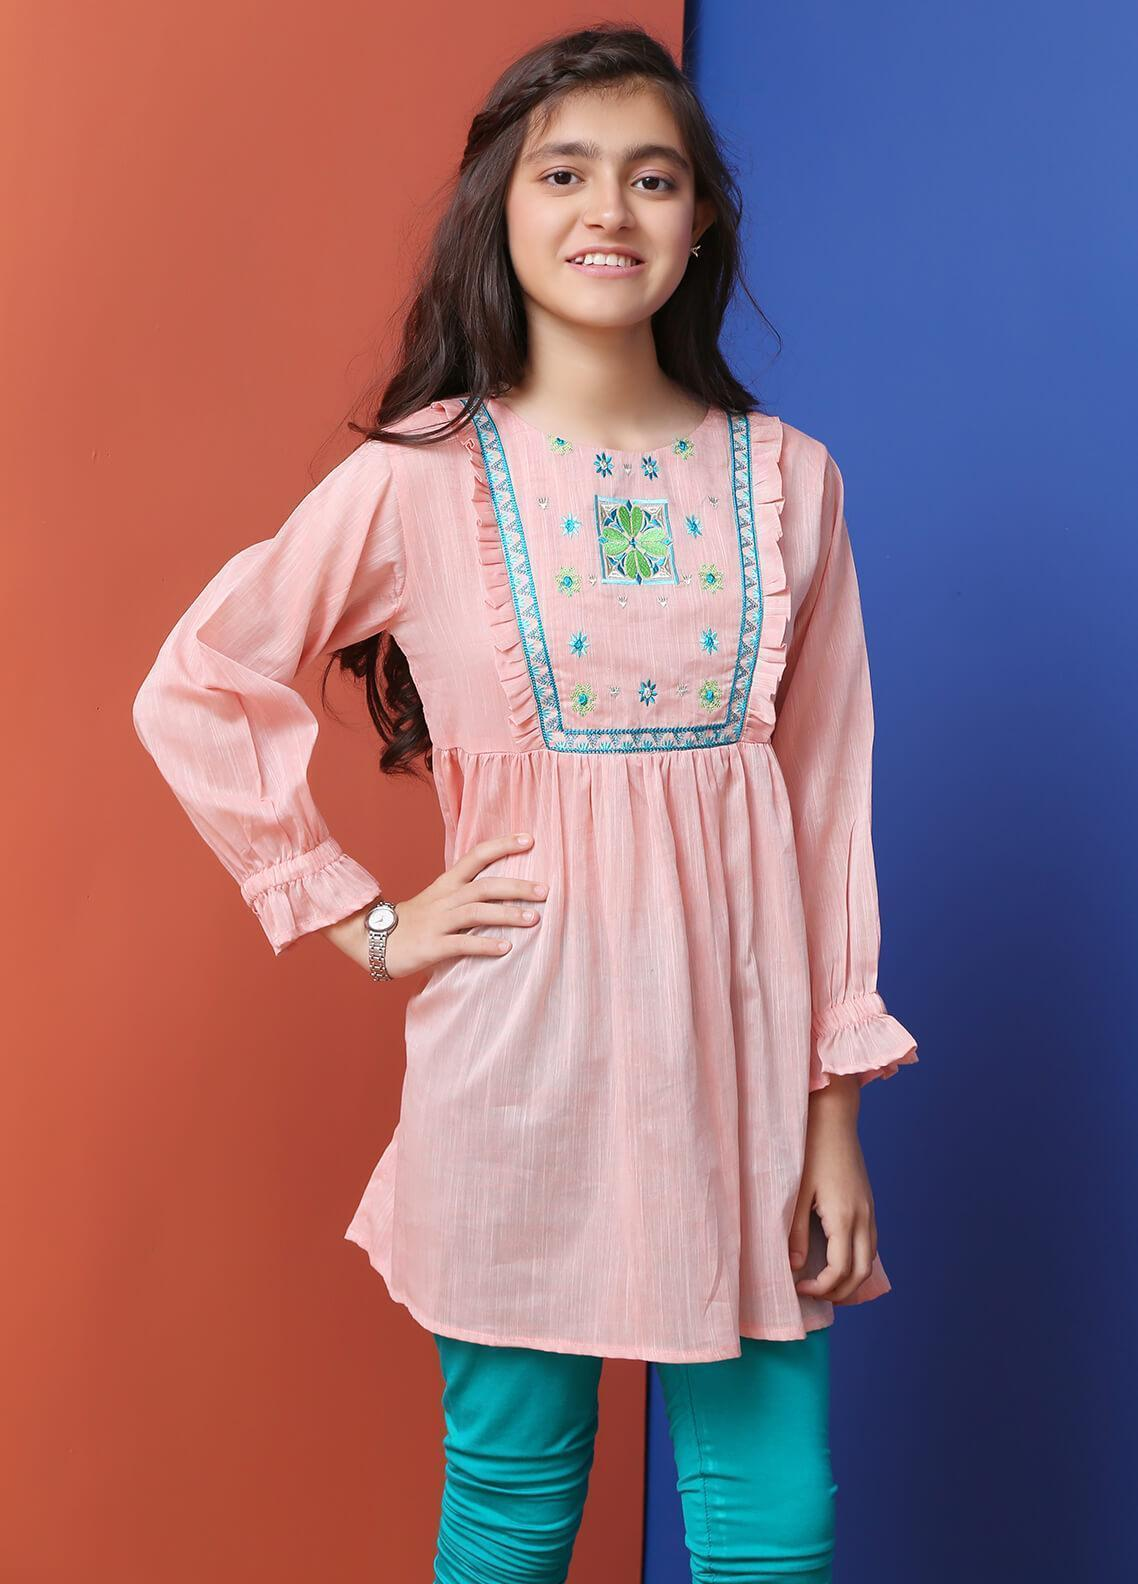 Ochre Cotton Formal Girls Kurtis - OWT 266 Peach